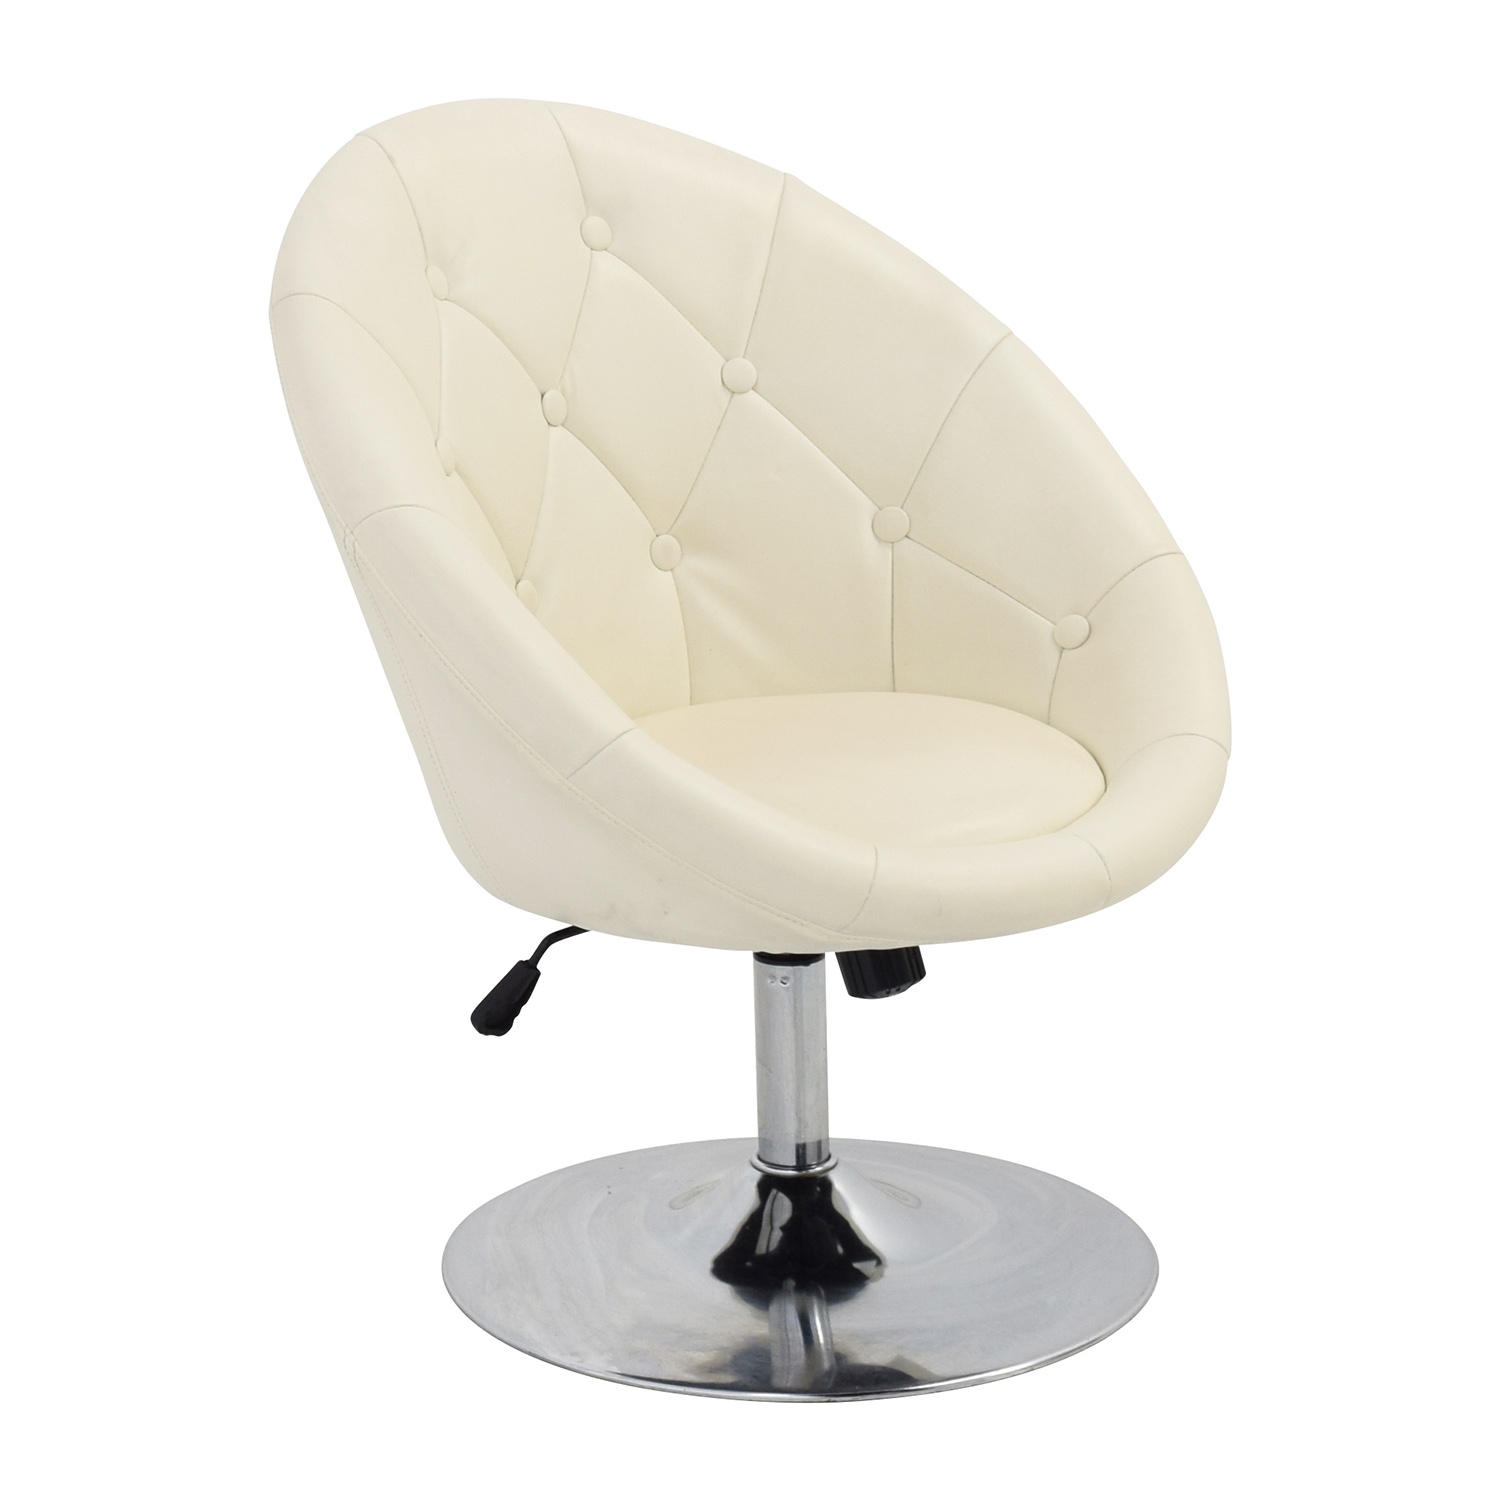 White Leather Swivel Chair 59 Off Coaster Coaster Tufted White Leather Swivel